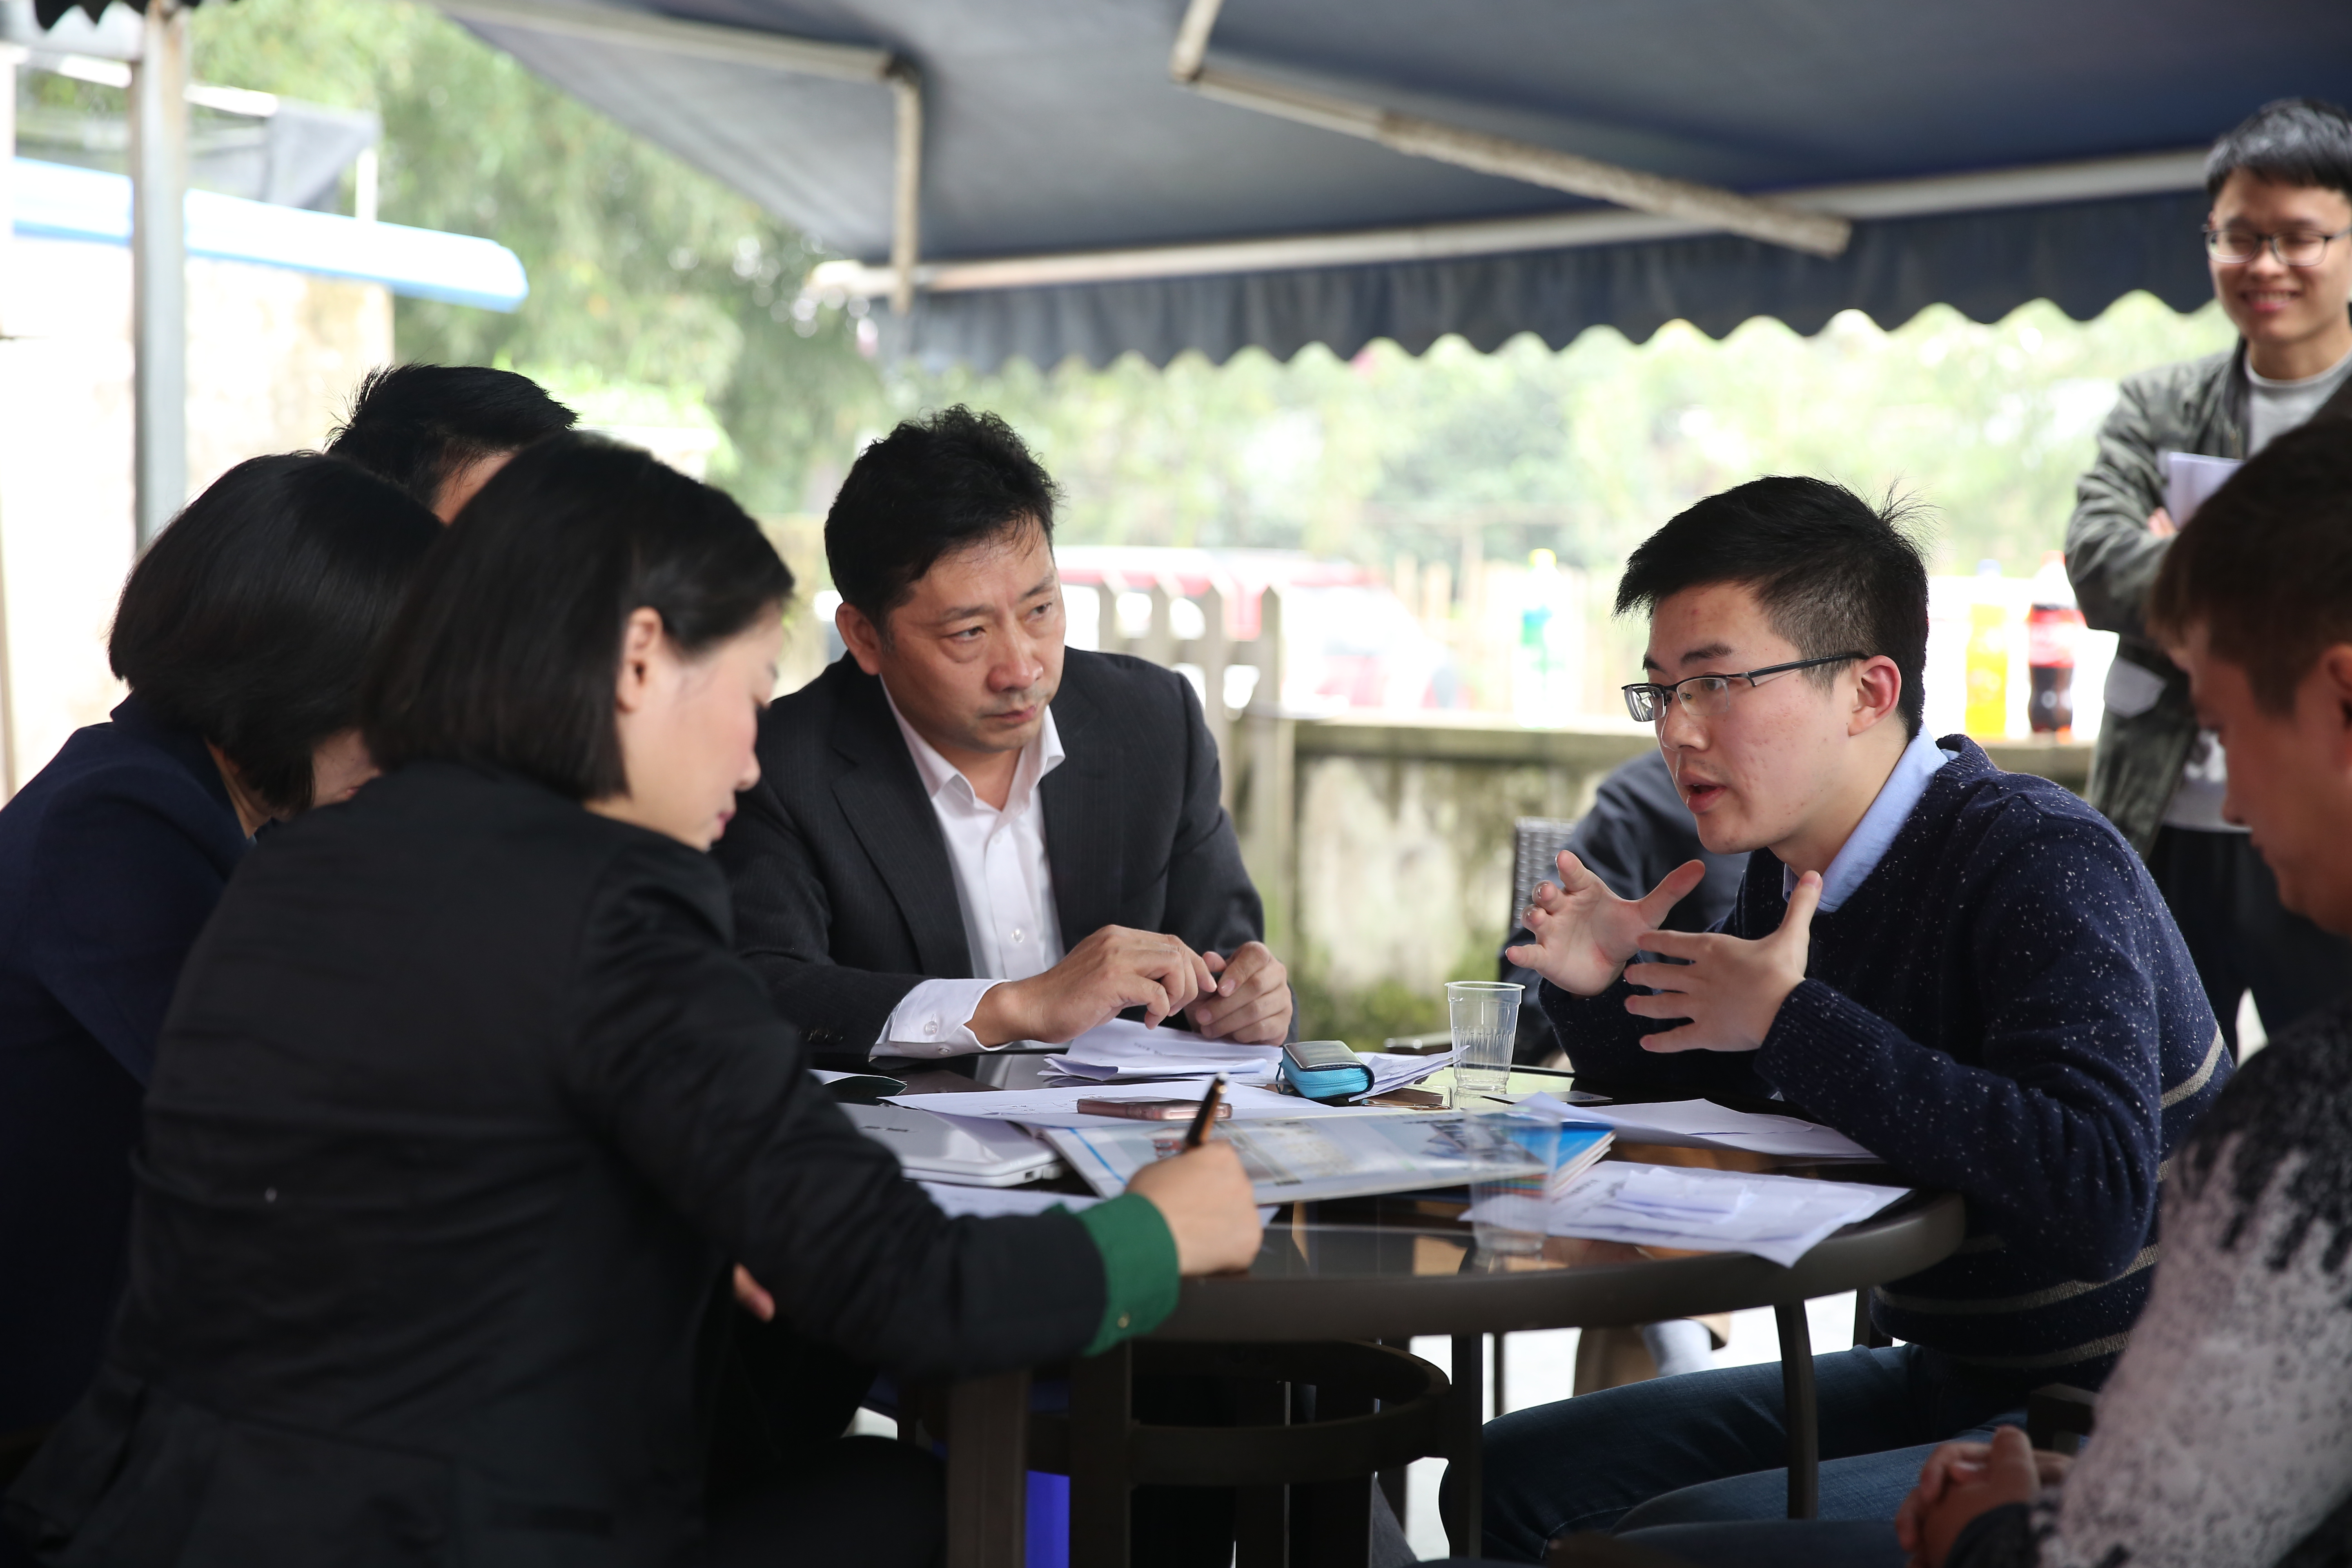 Chairman of PTH, Mr. Zhang took part in the PK